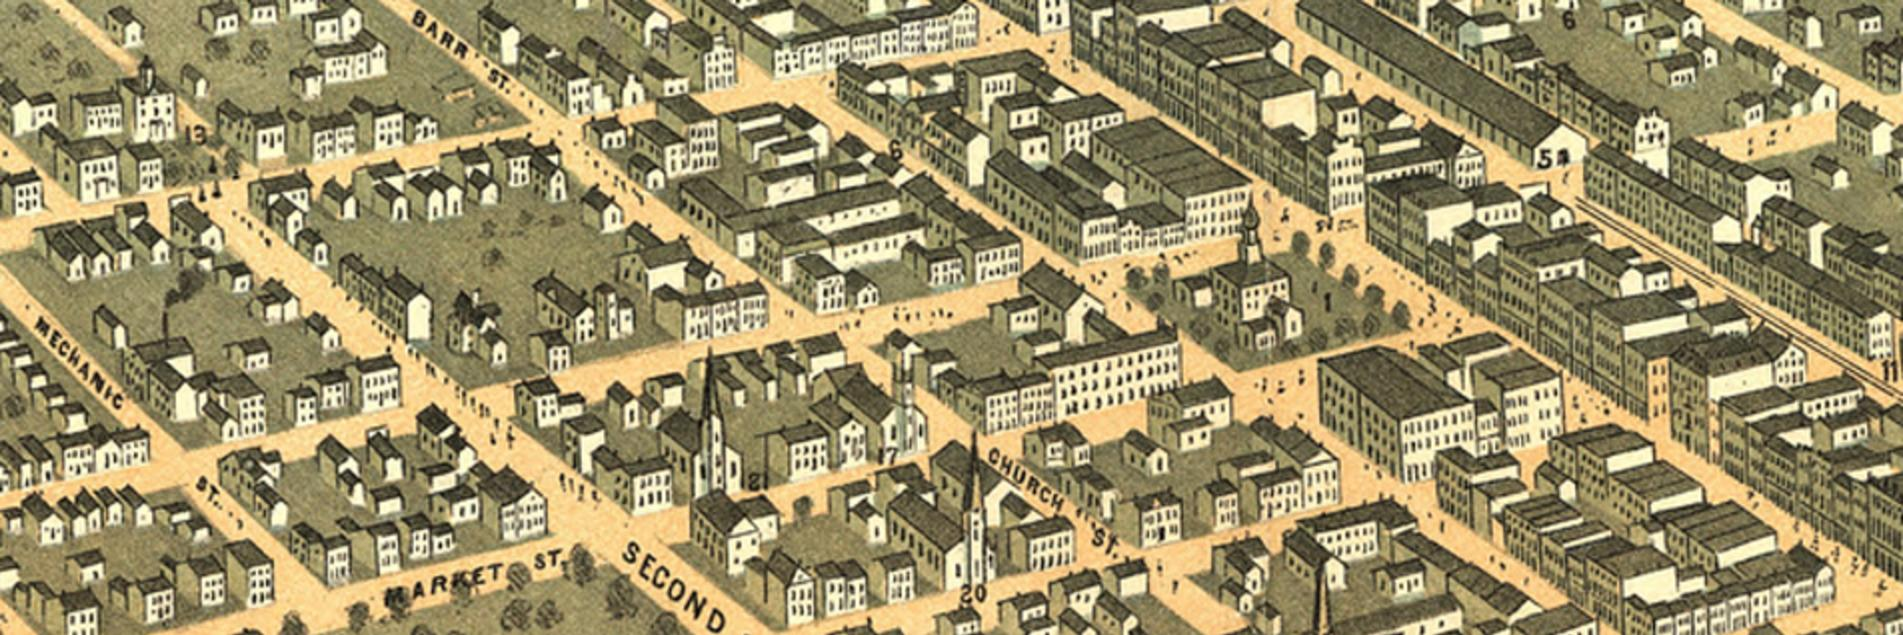 Old Map of Lexington